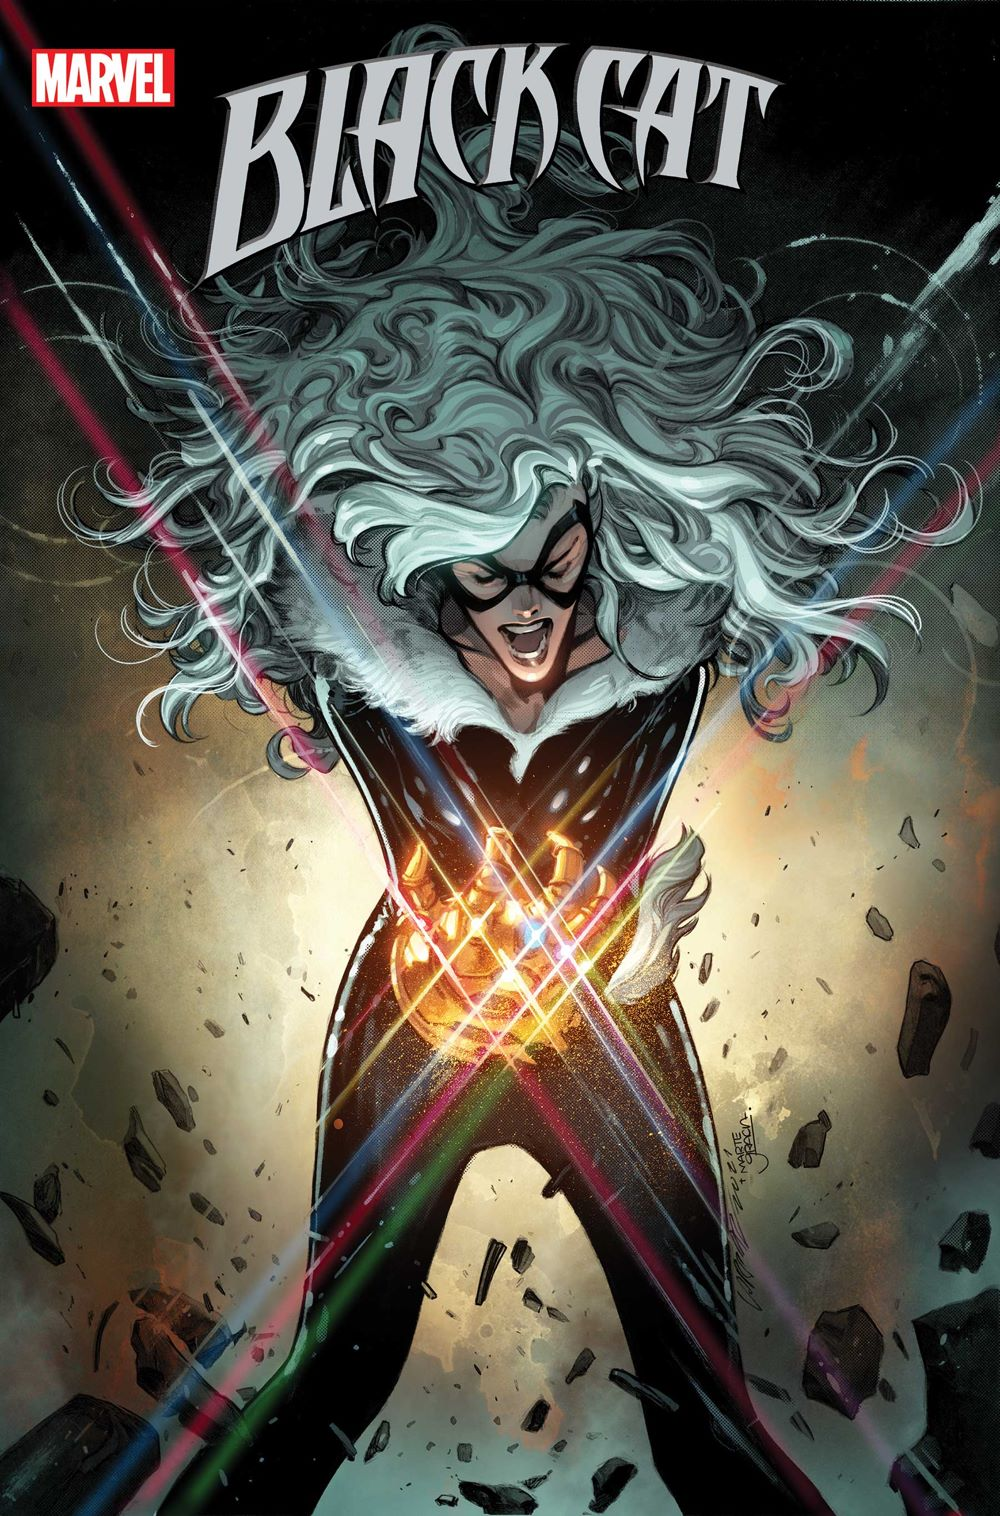 BLACKCAT2020008_cov Marvel Comics July 2021 Solicitations